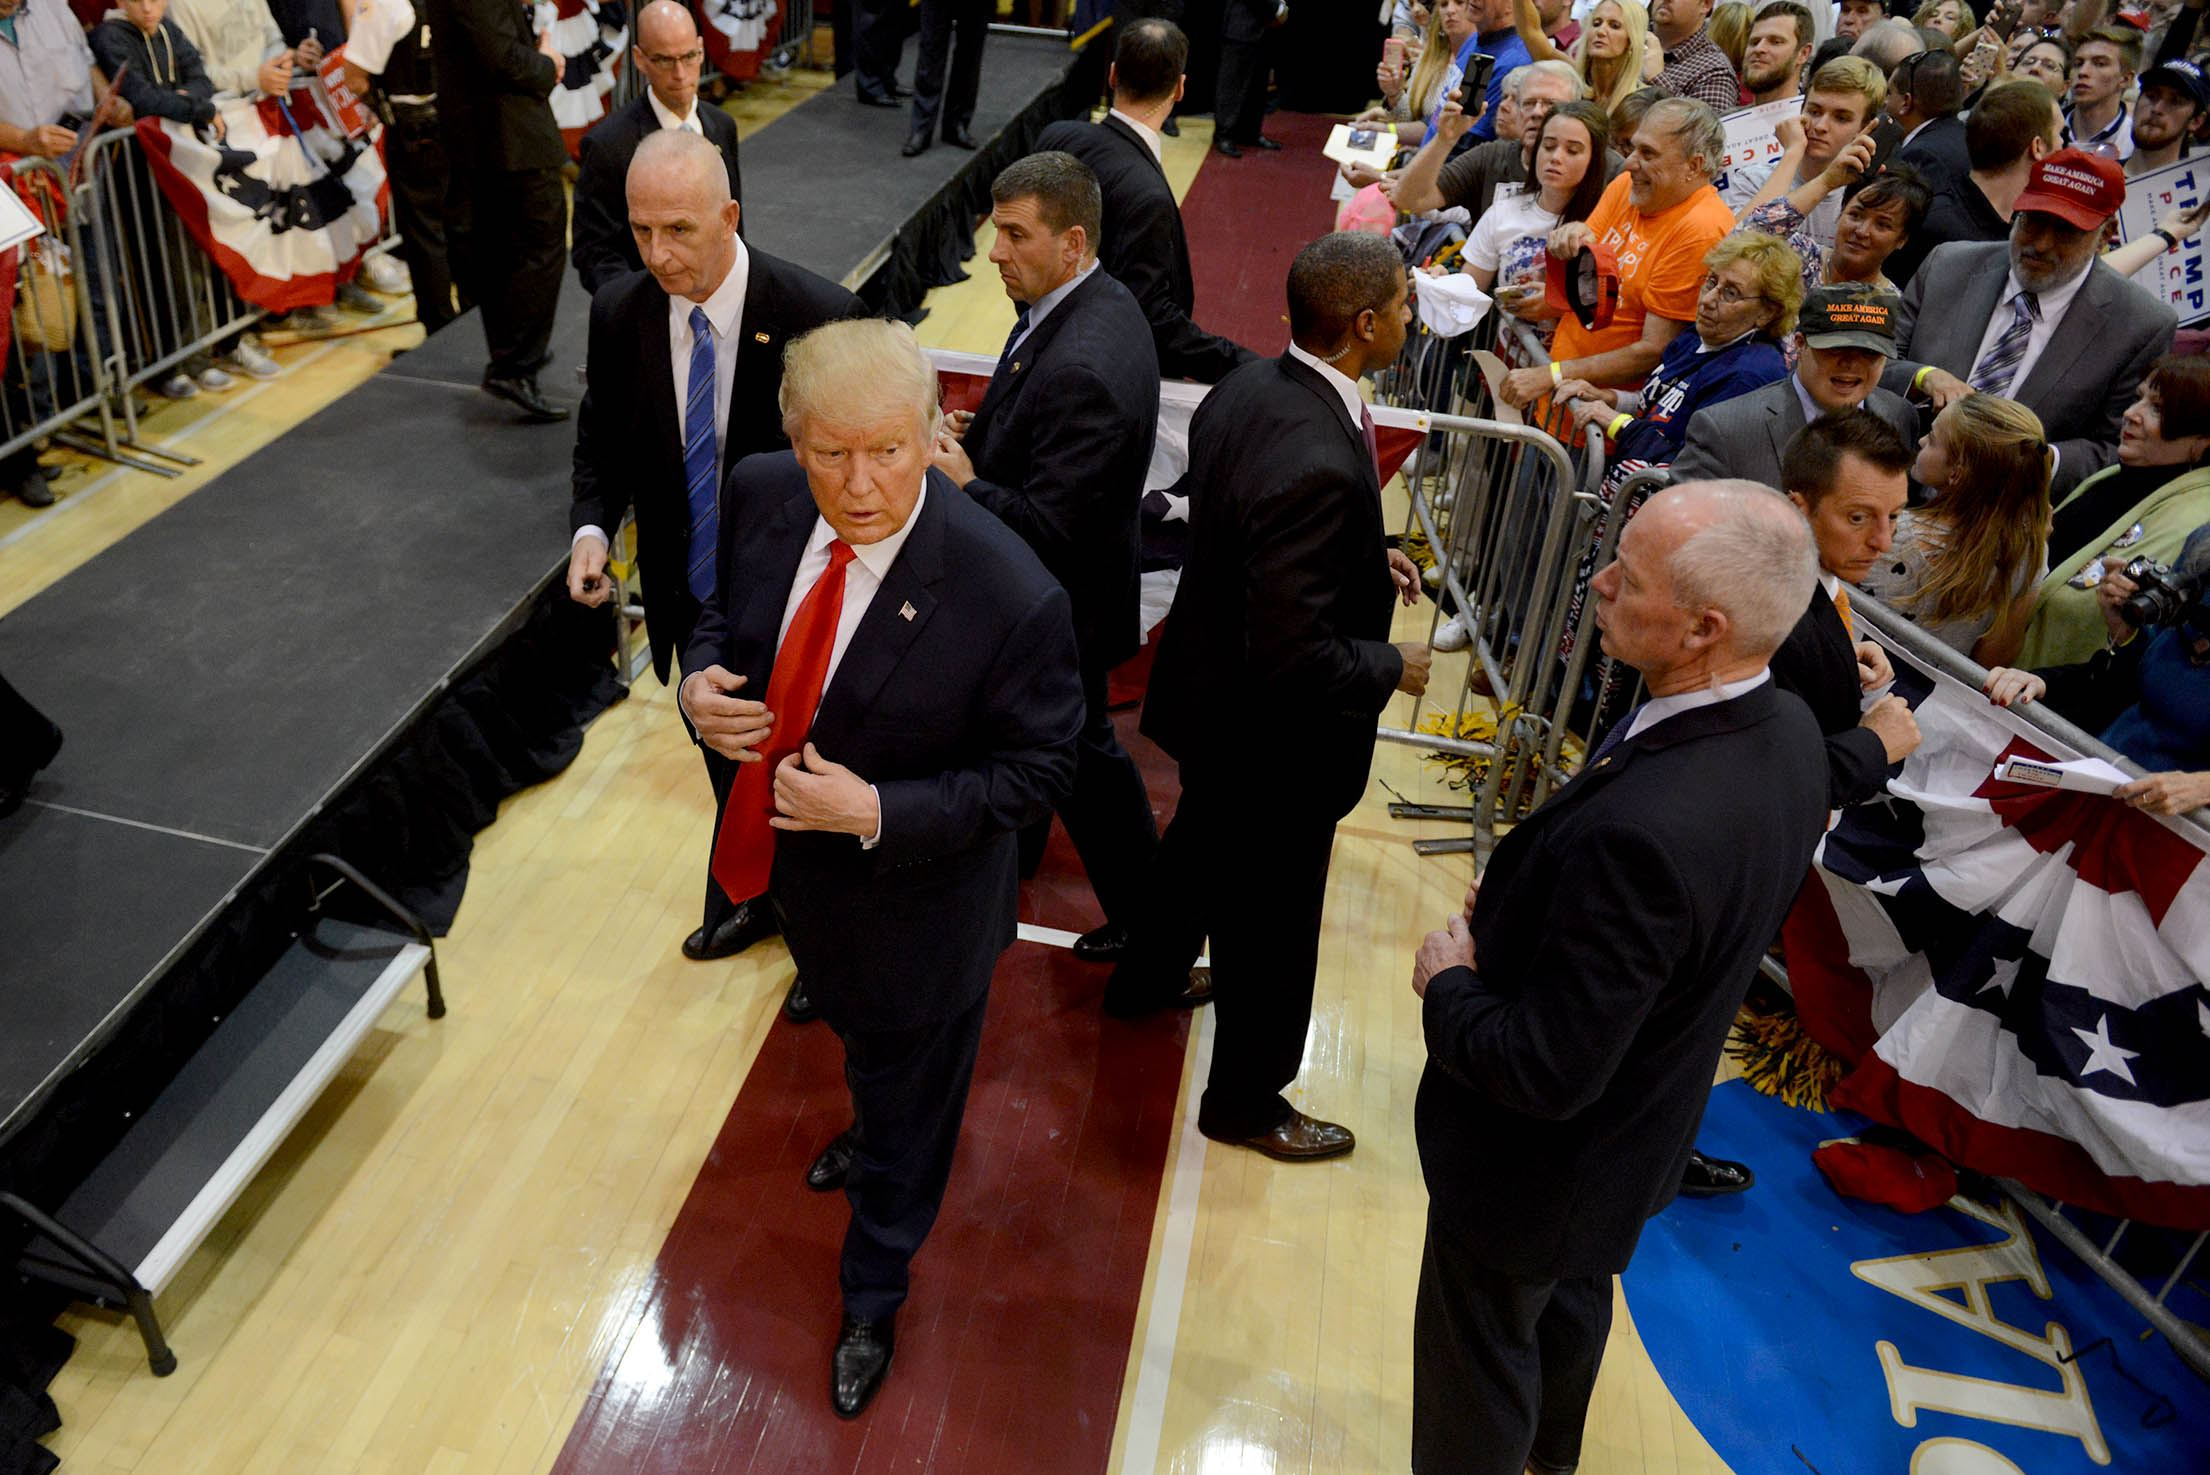 20161010MWHtrumpLocal08 Donald Trump works the rope line after speaking at Ambridge High School on Monday.